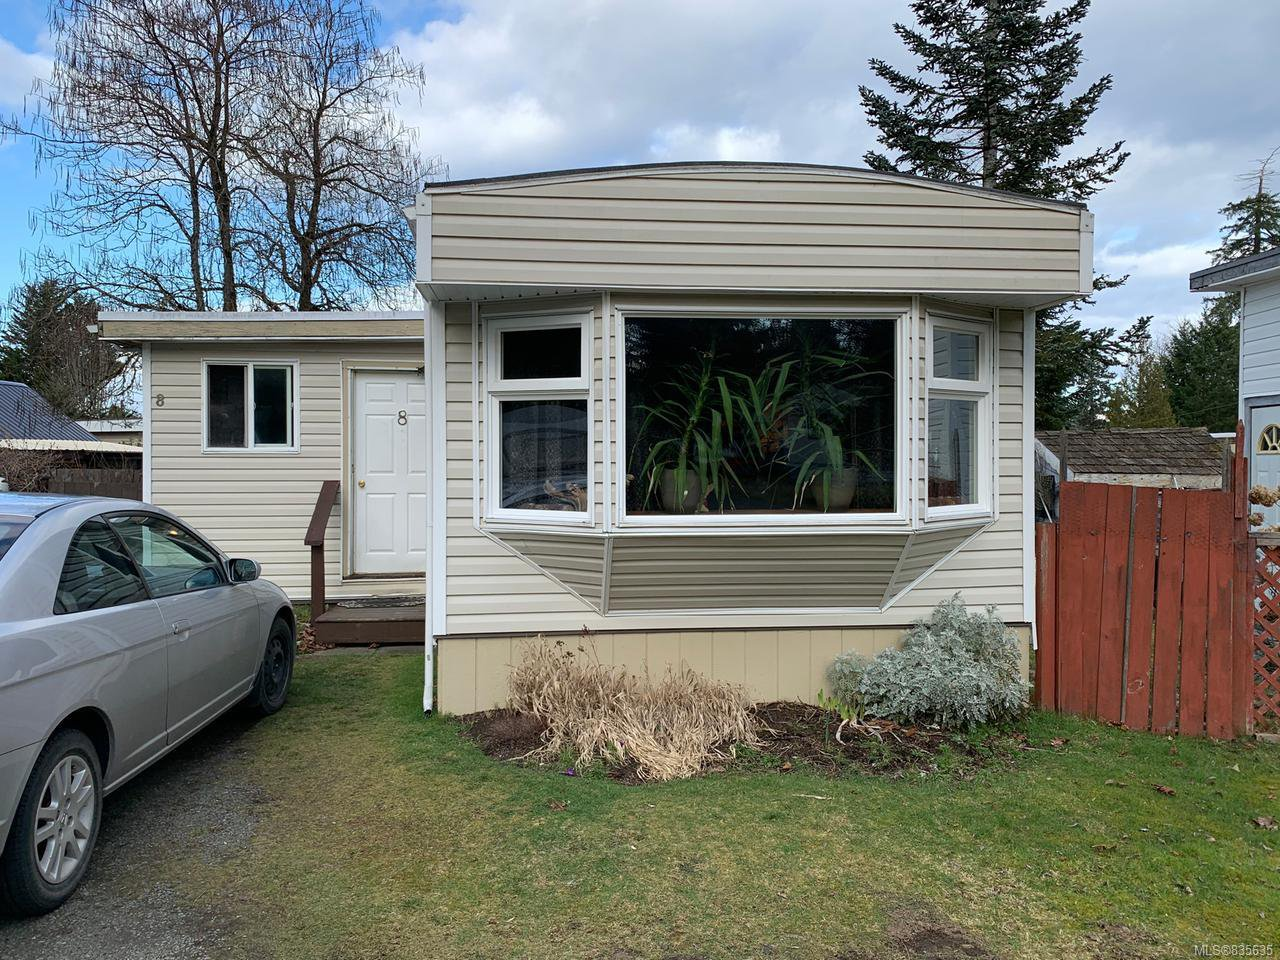 Main Photo: 8 2700 WOODBURN ROAD in CAMPBELL RIVER: CR Campbell River North Manufactured Home for sale (Campbell River)  : MLS®# 835635